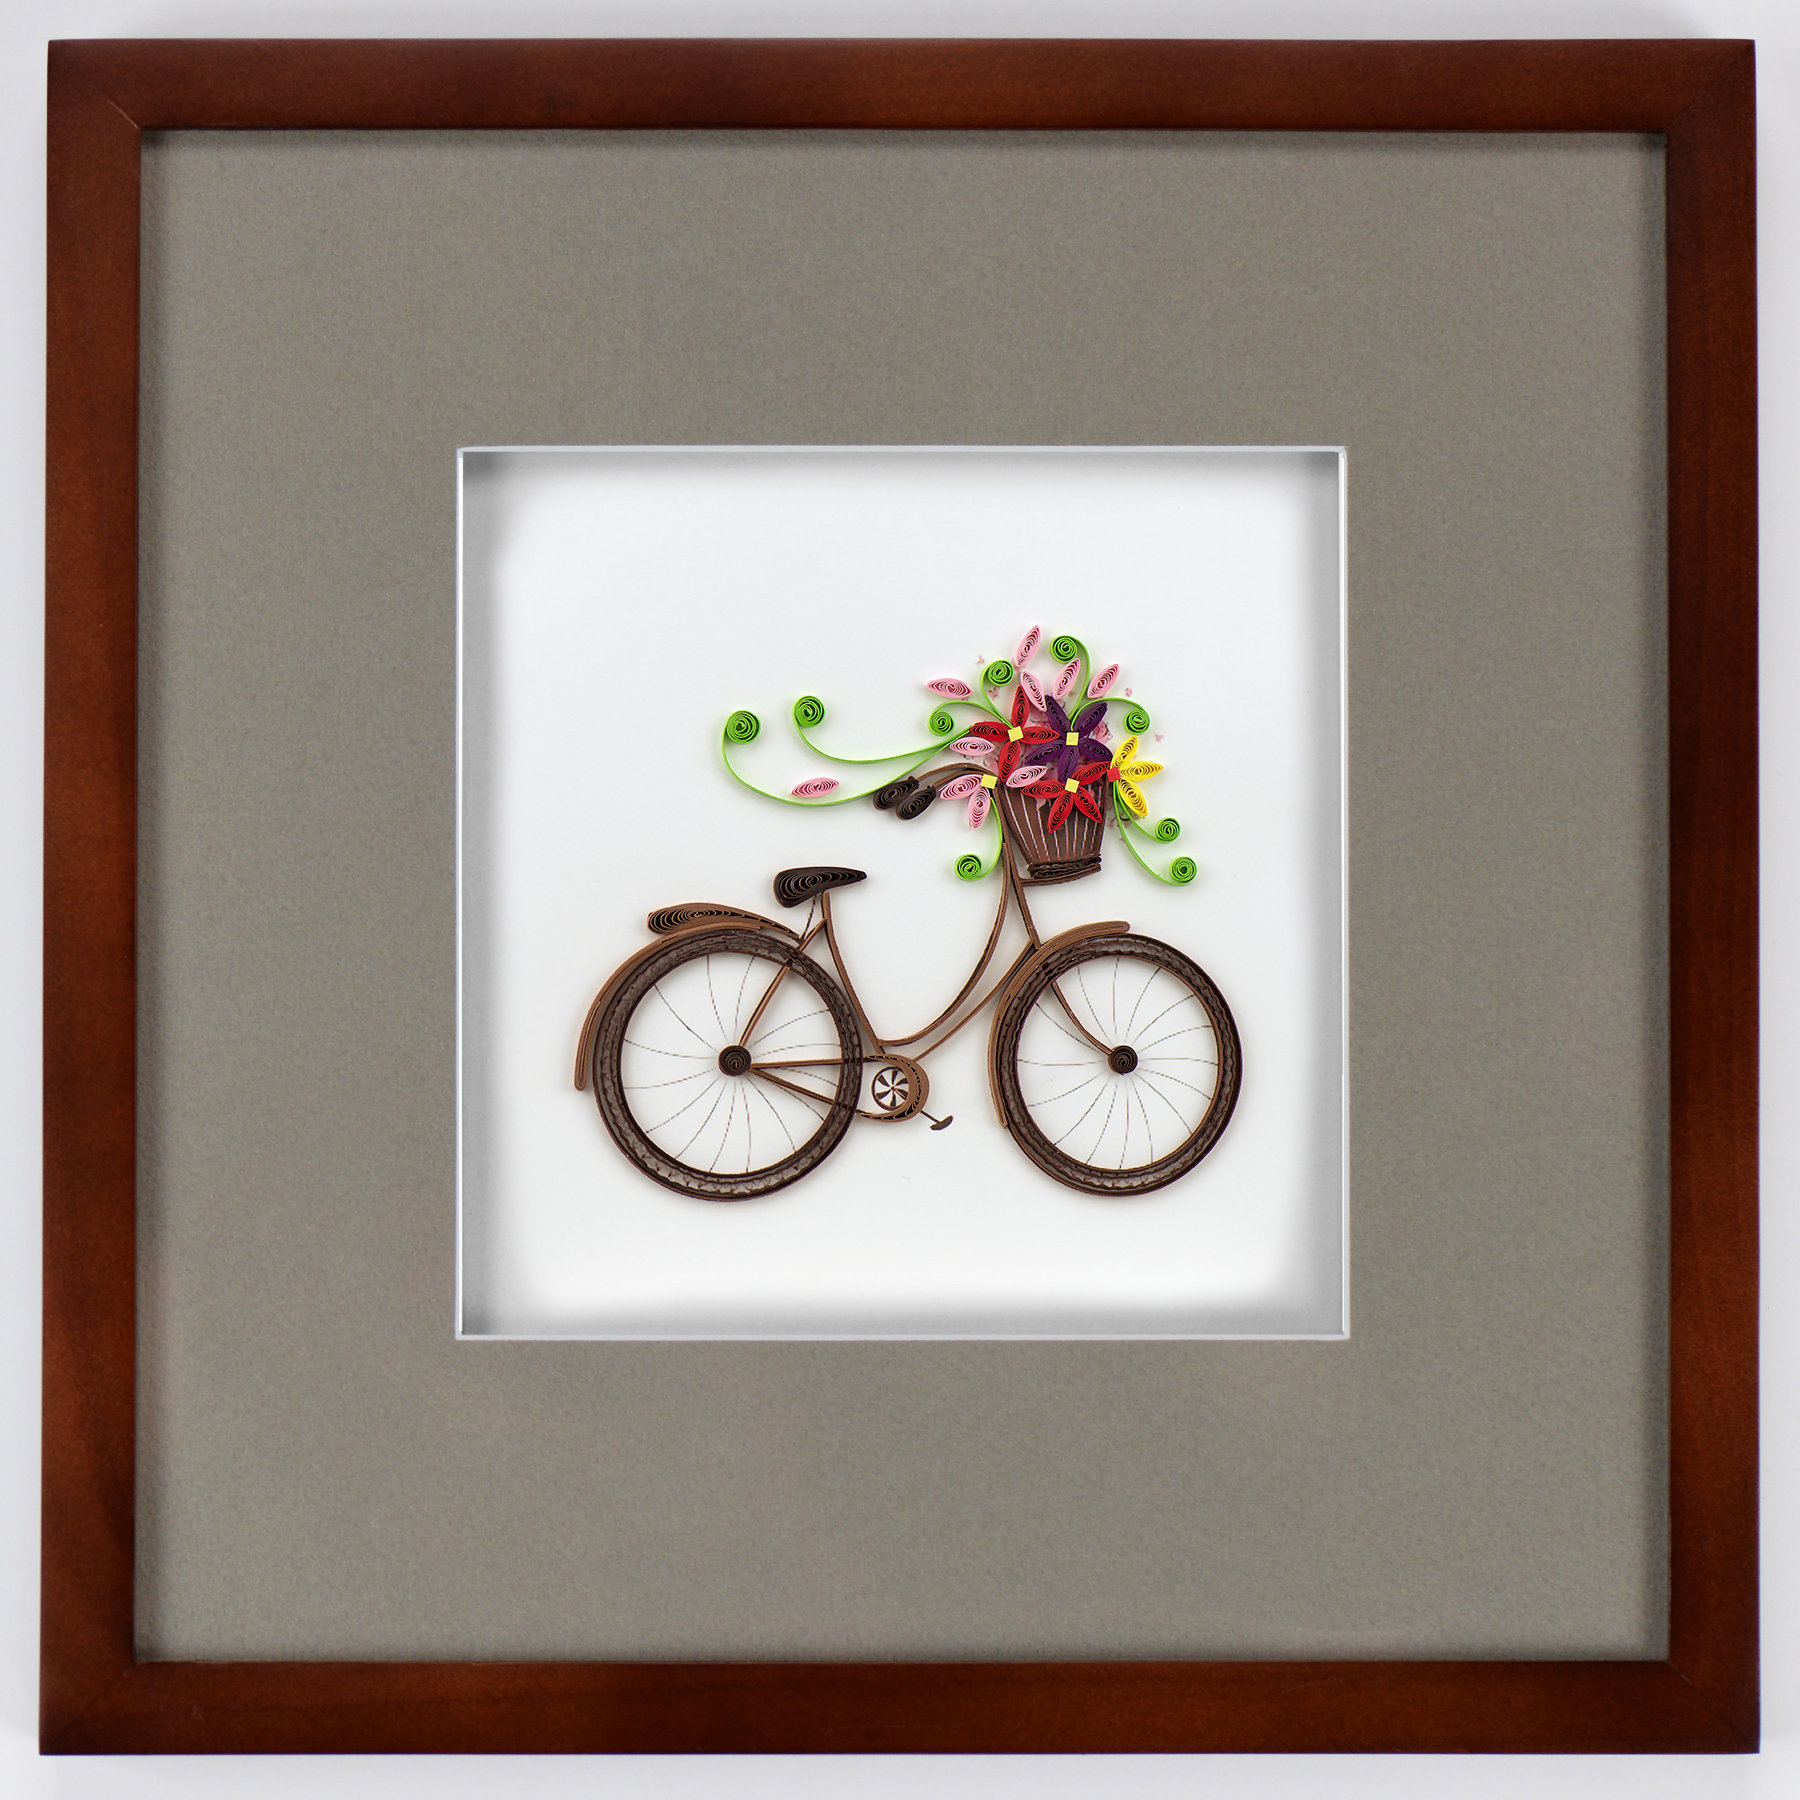 Bike Wall Decor By August Grove Regarding Well Known August Grove Bicycle With Flower Basket Framed Wall Decor (View 5 of 20)